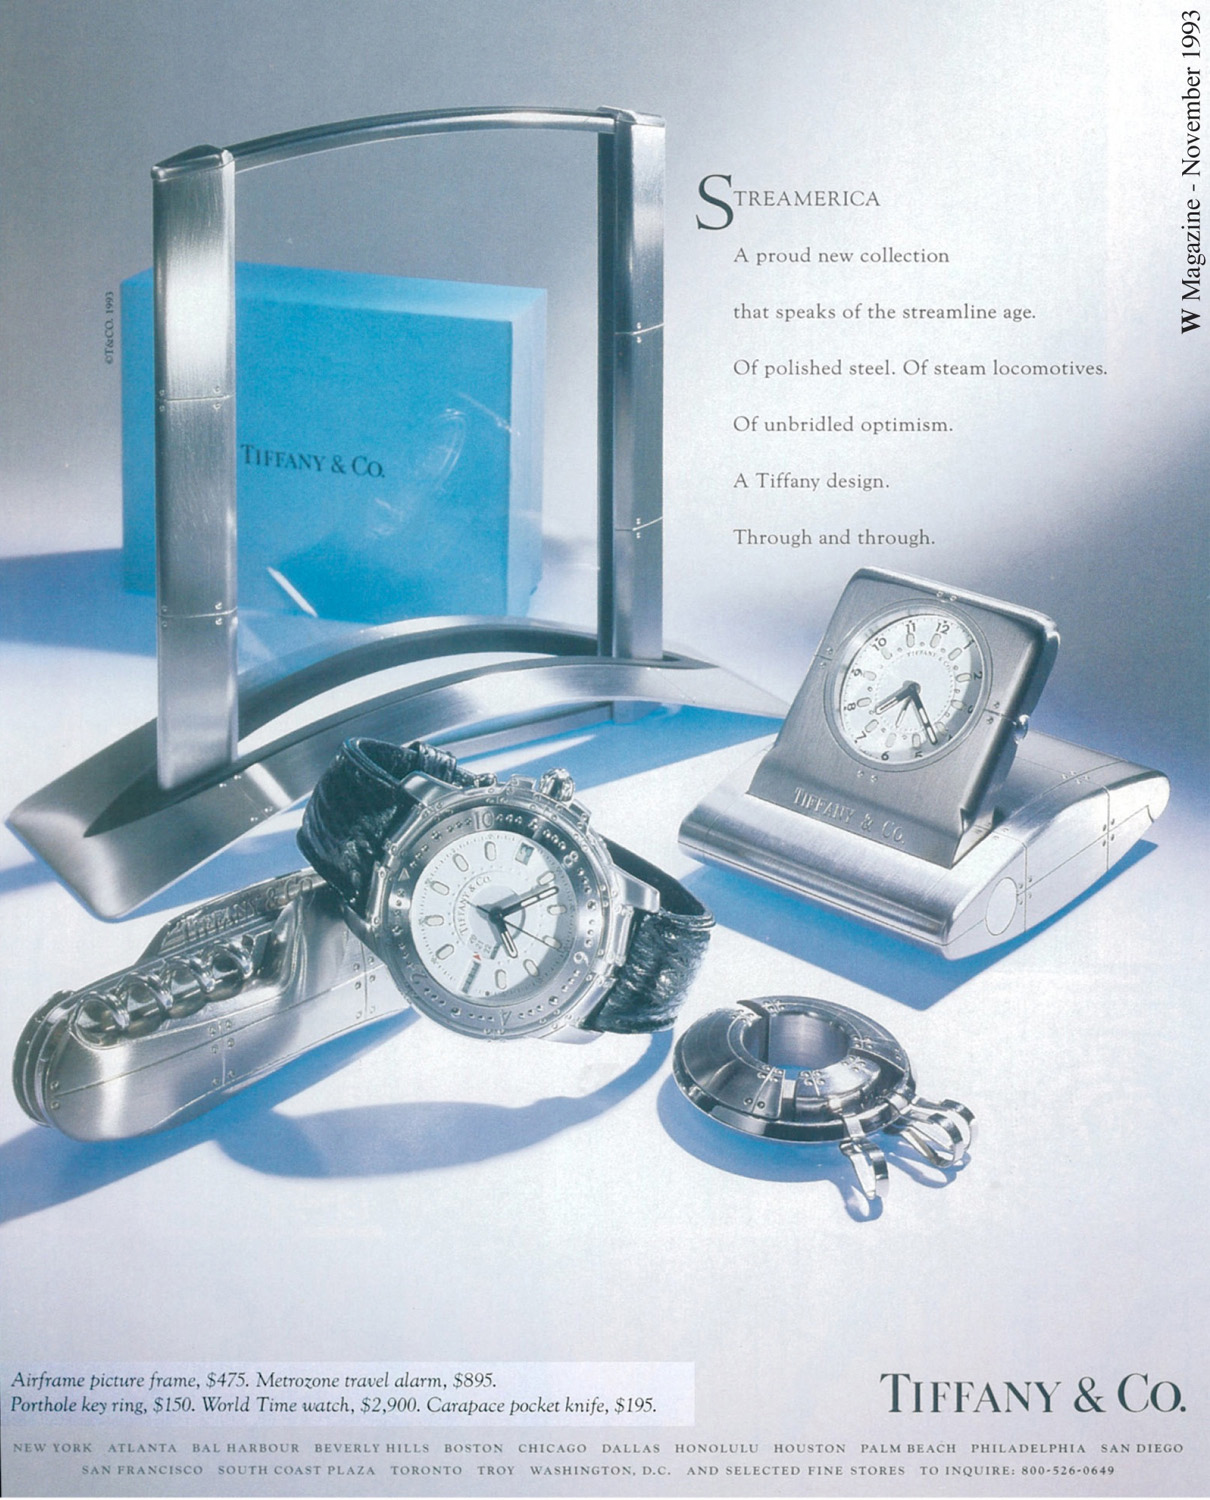 Tiffany & Co. Streamerica Stainless Steel Collection Advertisements W 1993